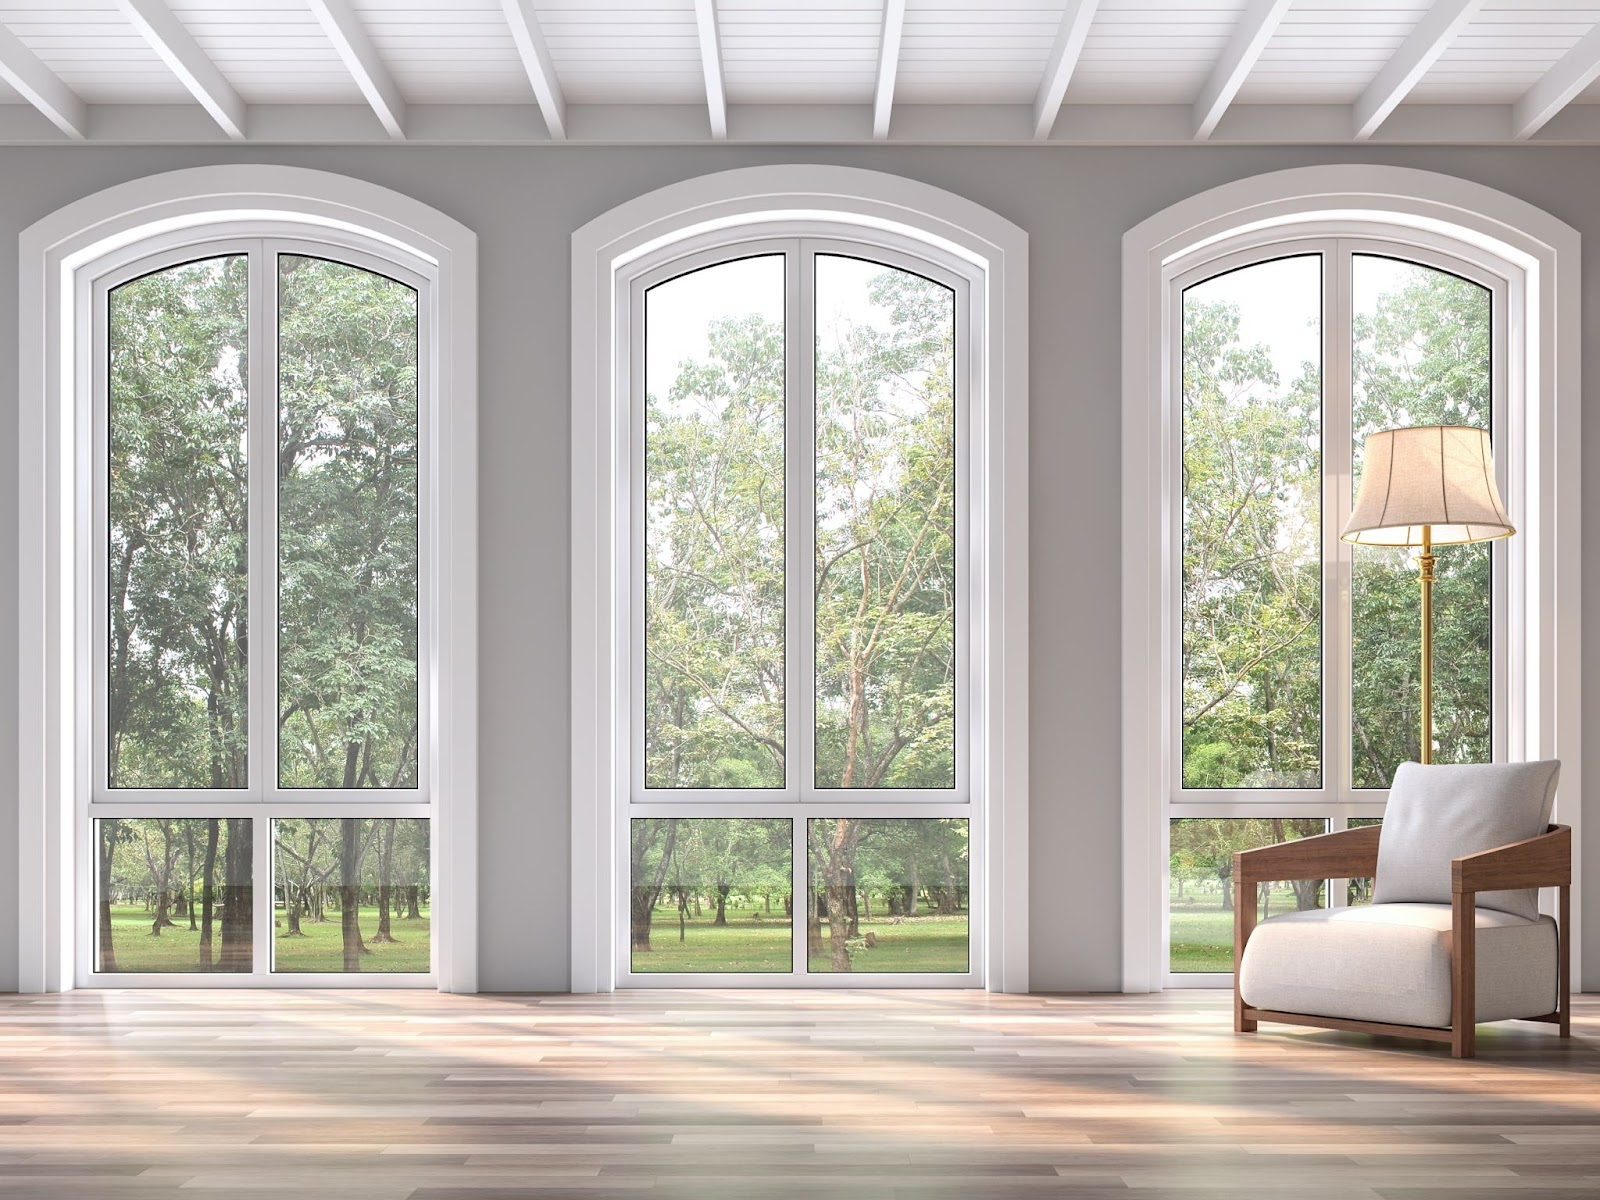 A combination of arched casement windows above fixed windows